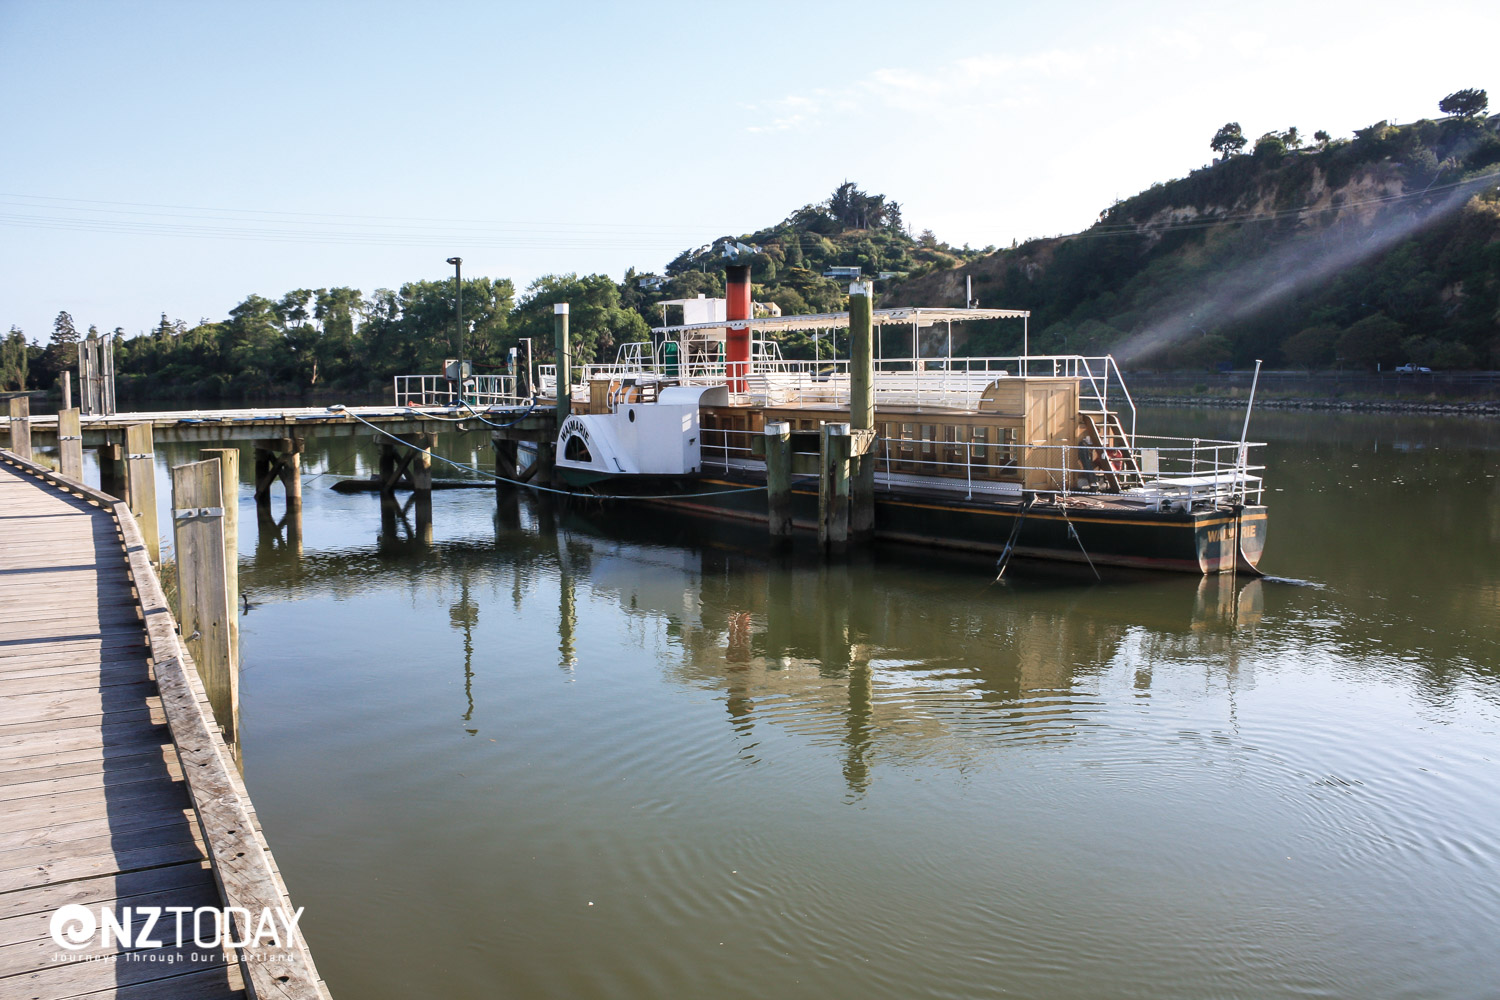 The old Waimarie paddle steamer still plies the river